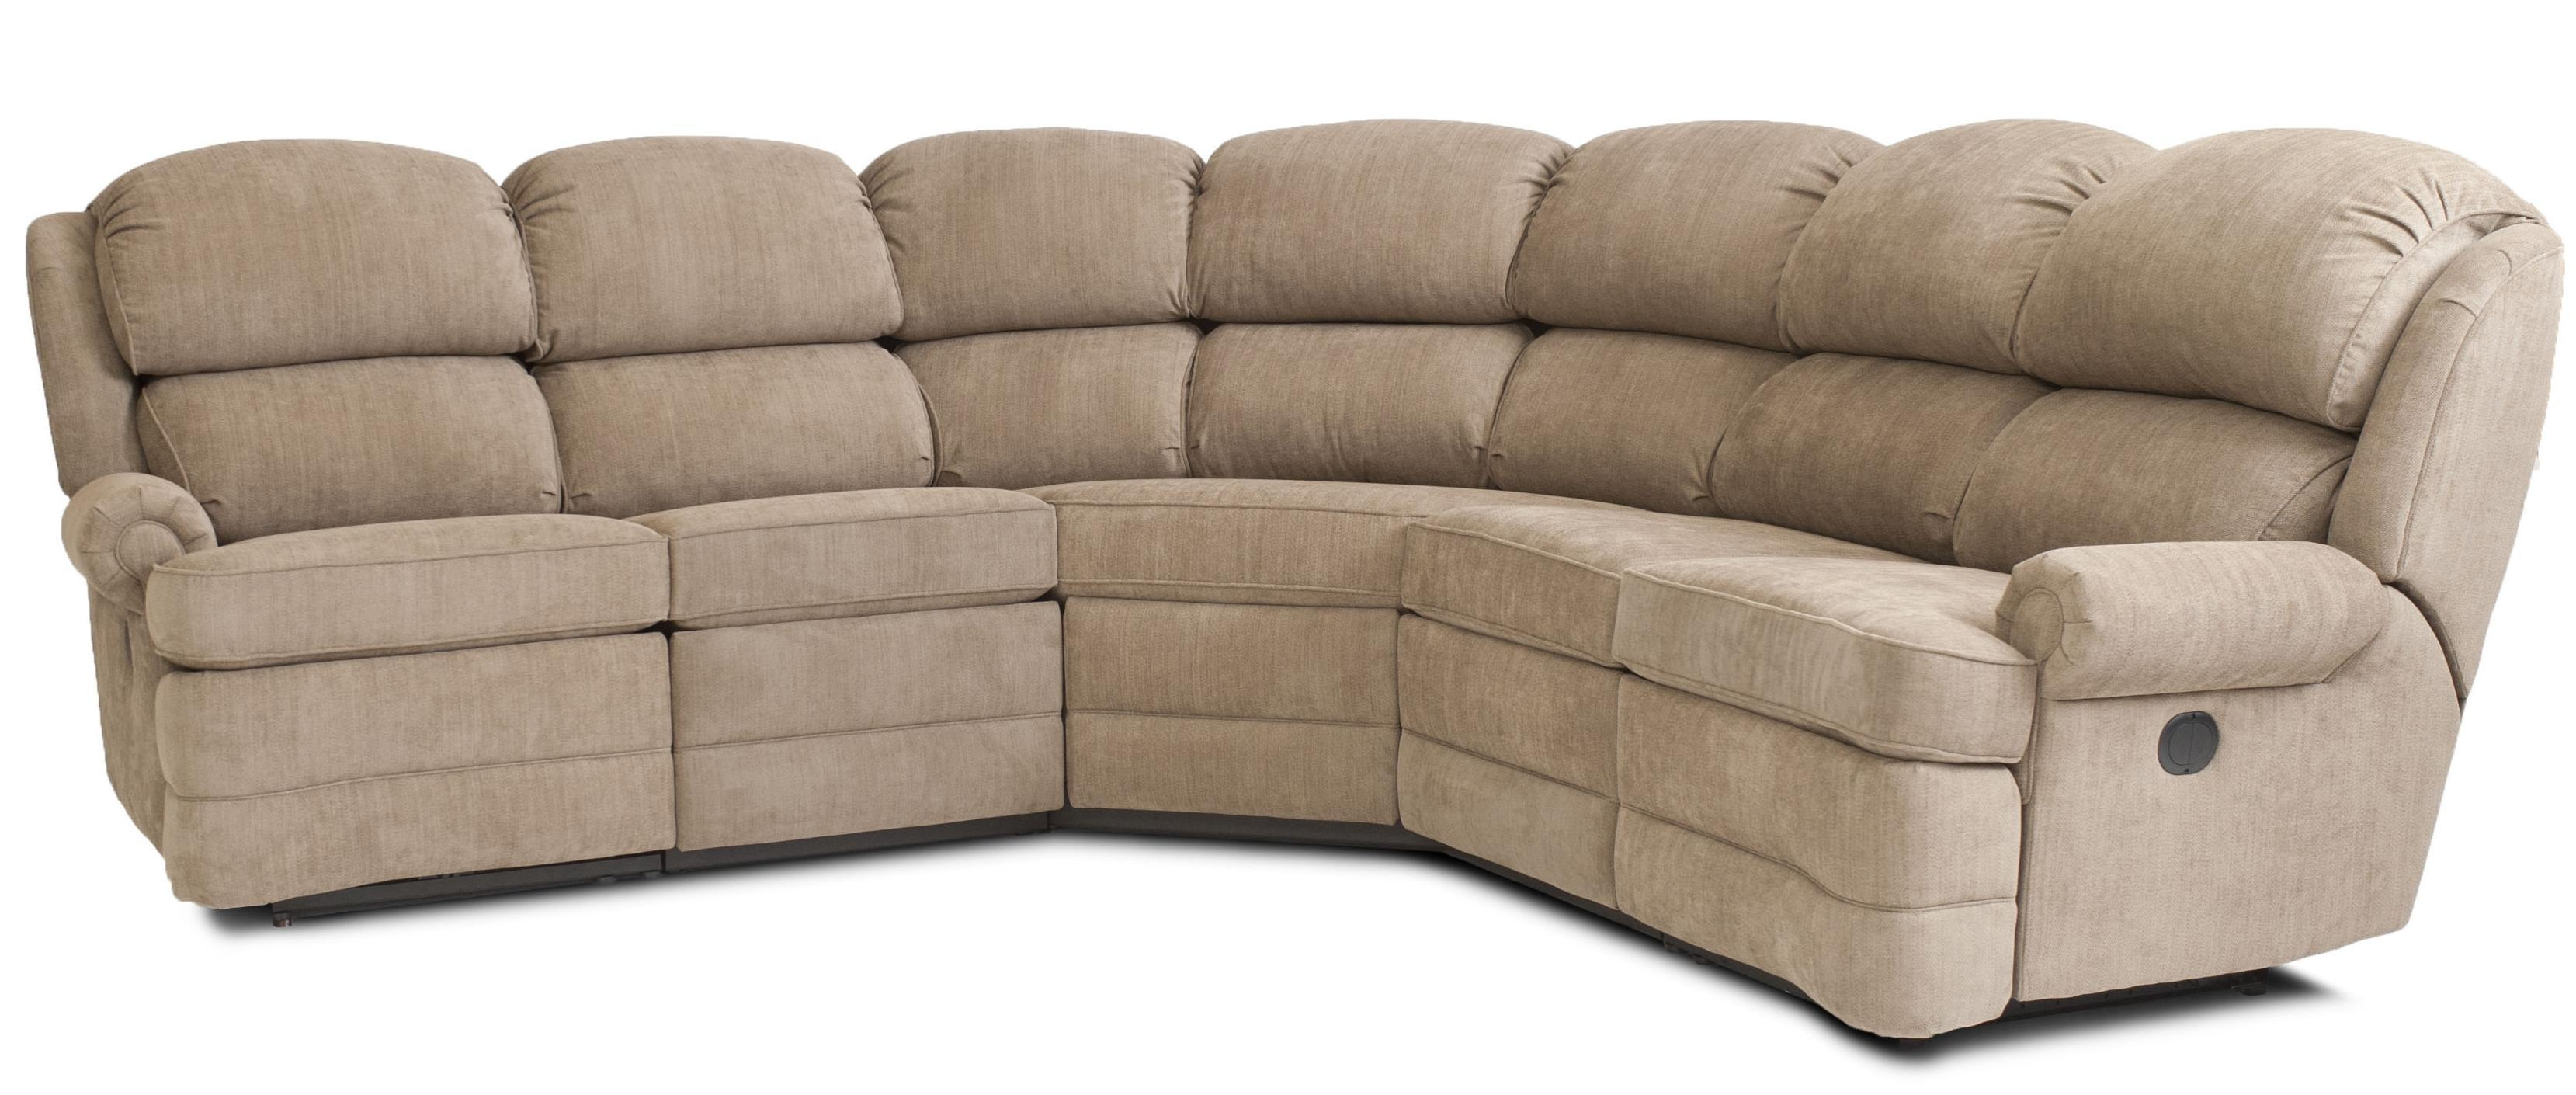 Furniture: Incredible Style Sectional Reclining Sofas For Your Pertaining To Individual Piece Sectional Sofas (View 17 of 20)